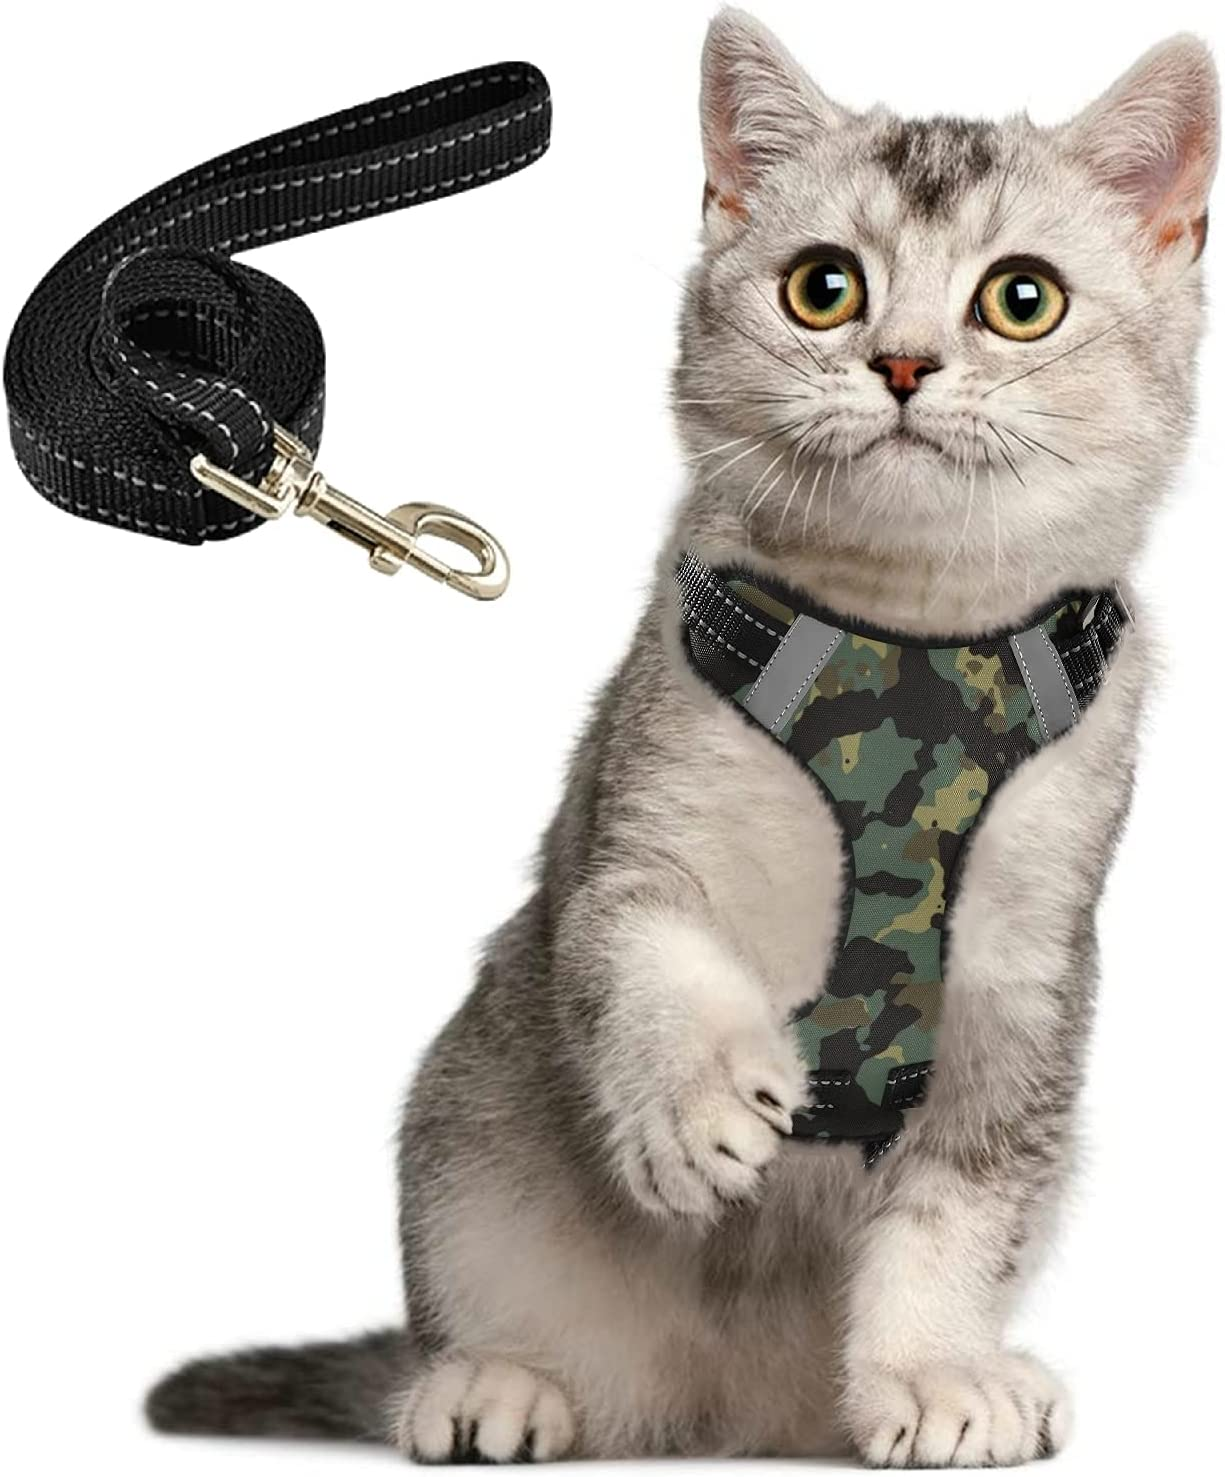 Green Camo Cat Harness and Leash Walking Proof A for Manufacturer Mail order cheap direct delivery Set Escape